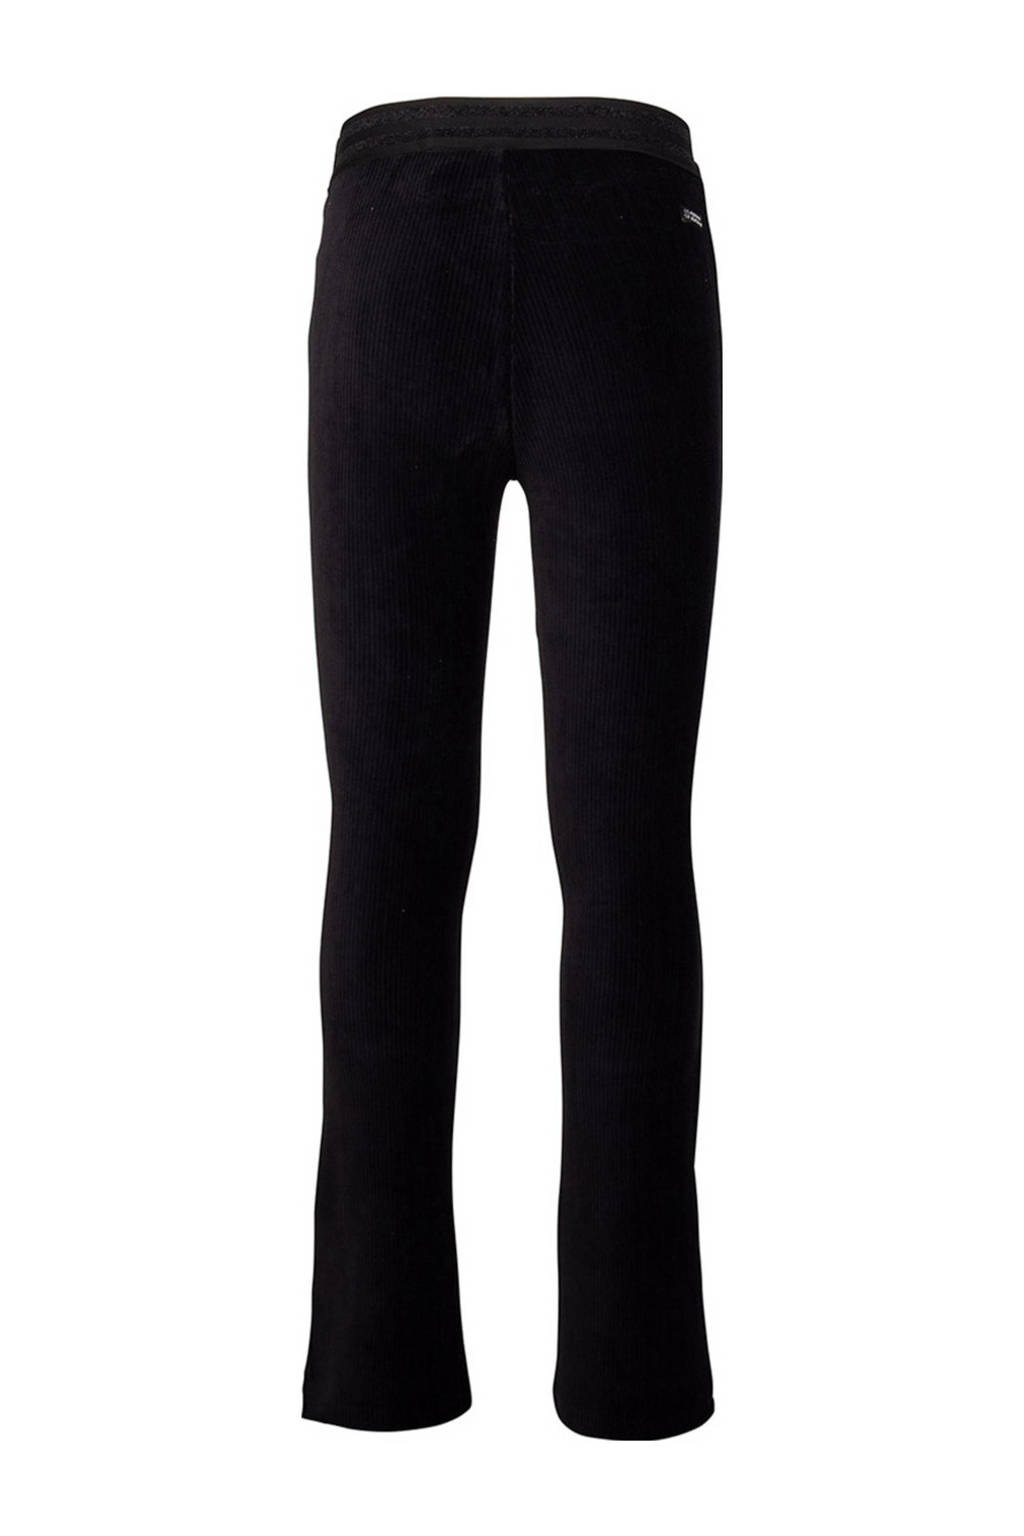 Indian Blue Jeans flared broek zwart, Zwart